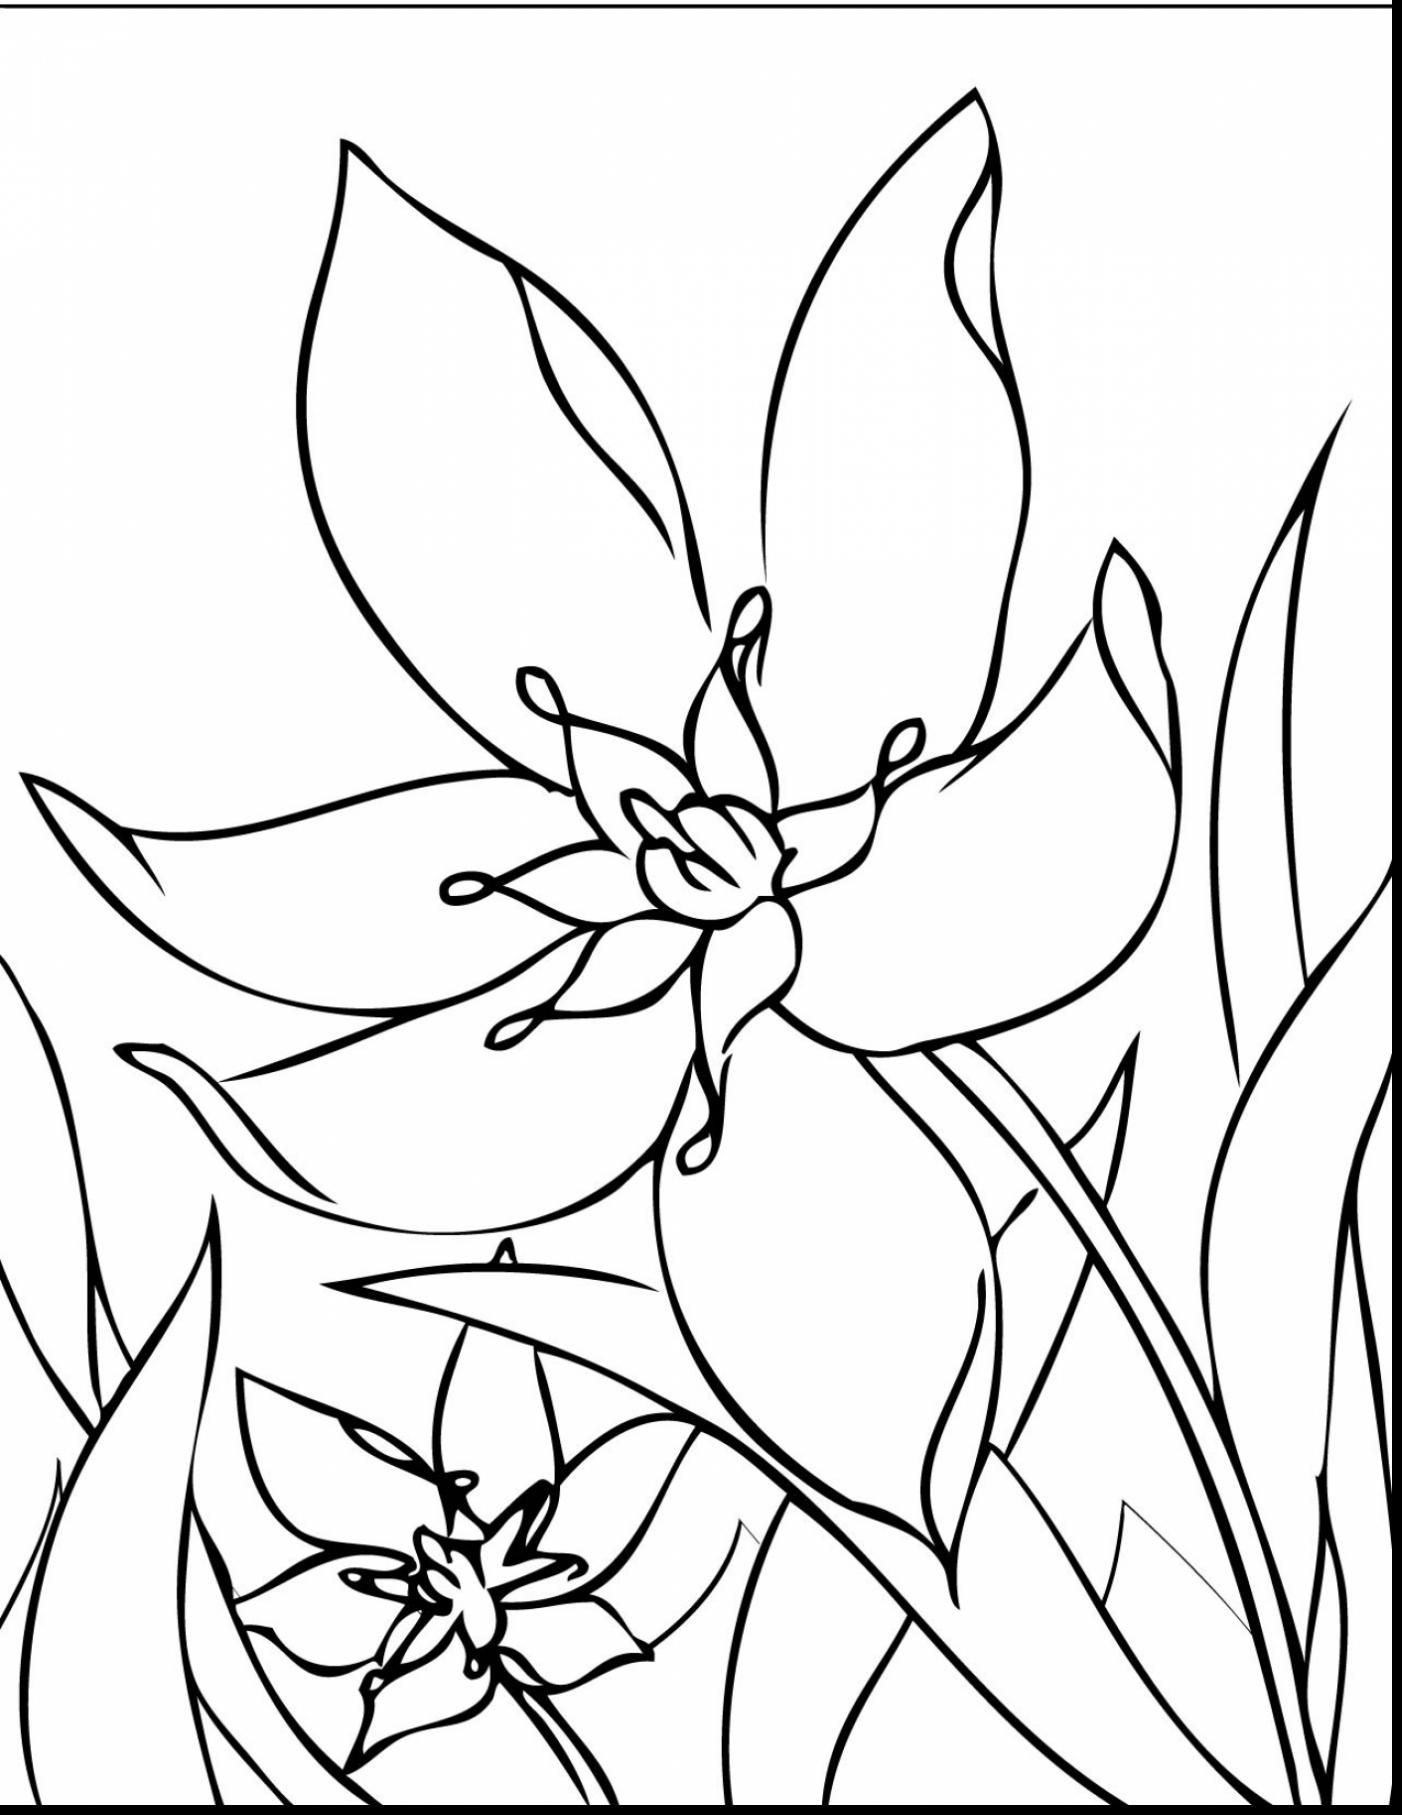 Astonishing Spring Flower Coloring Pages With Spring Coloring Pages And Spring Coloring Pages Crayola Spring Coloring Pages Garden Coloring Pages